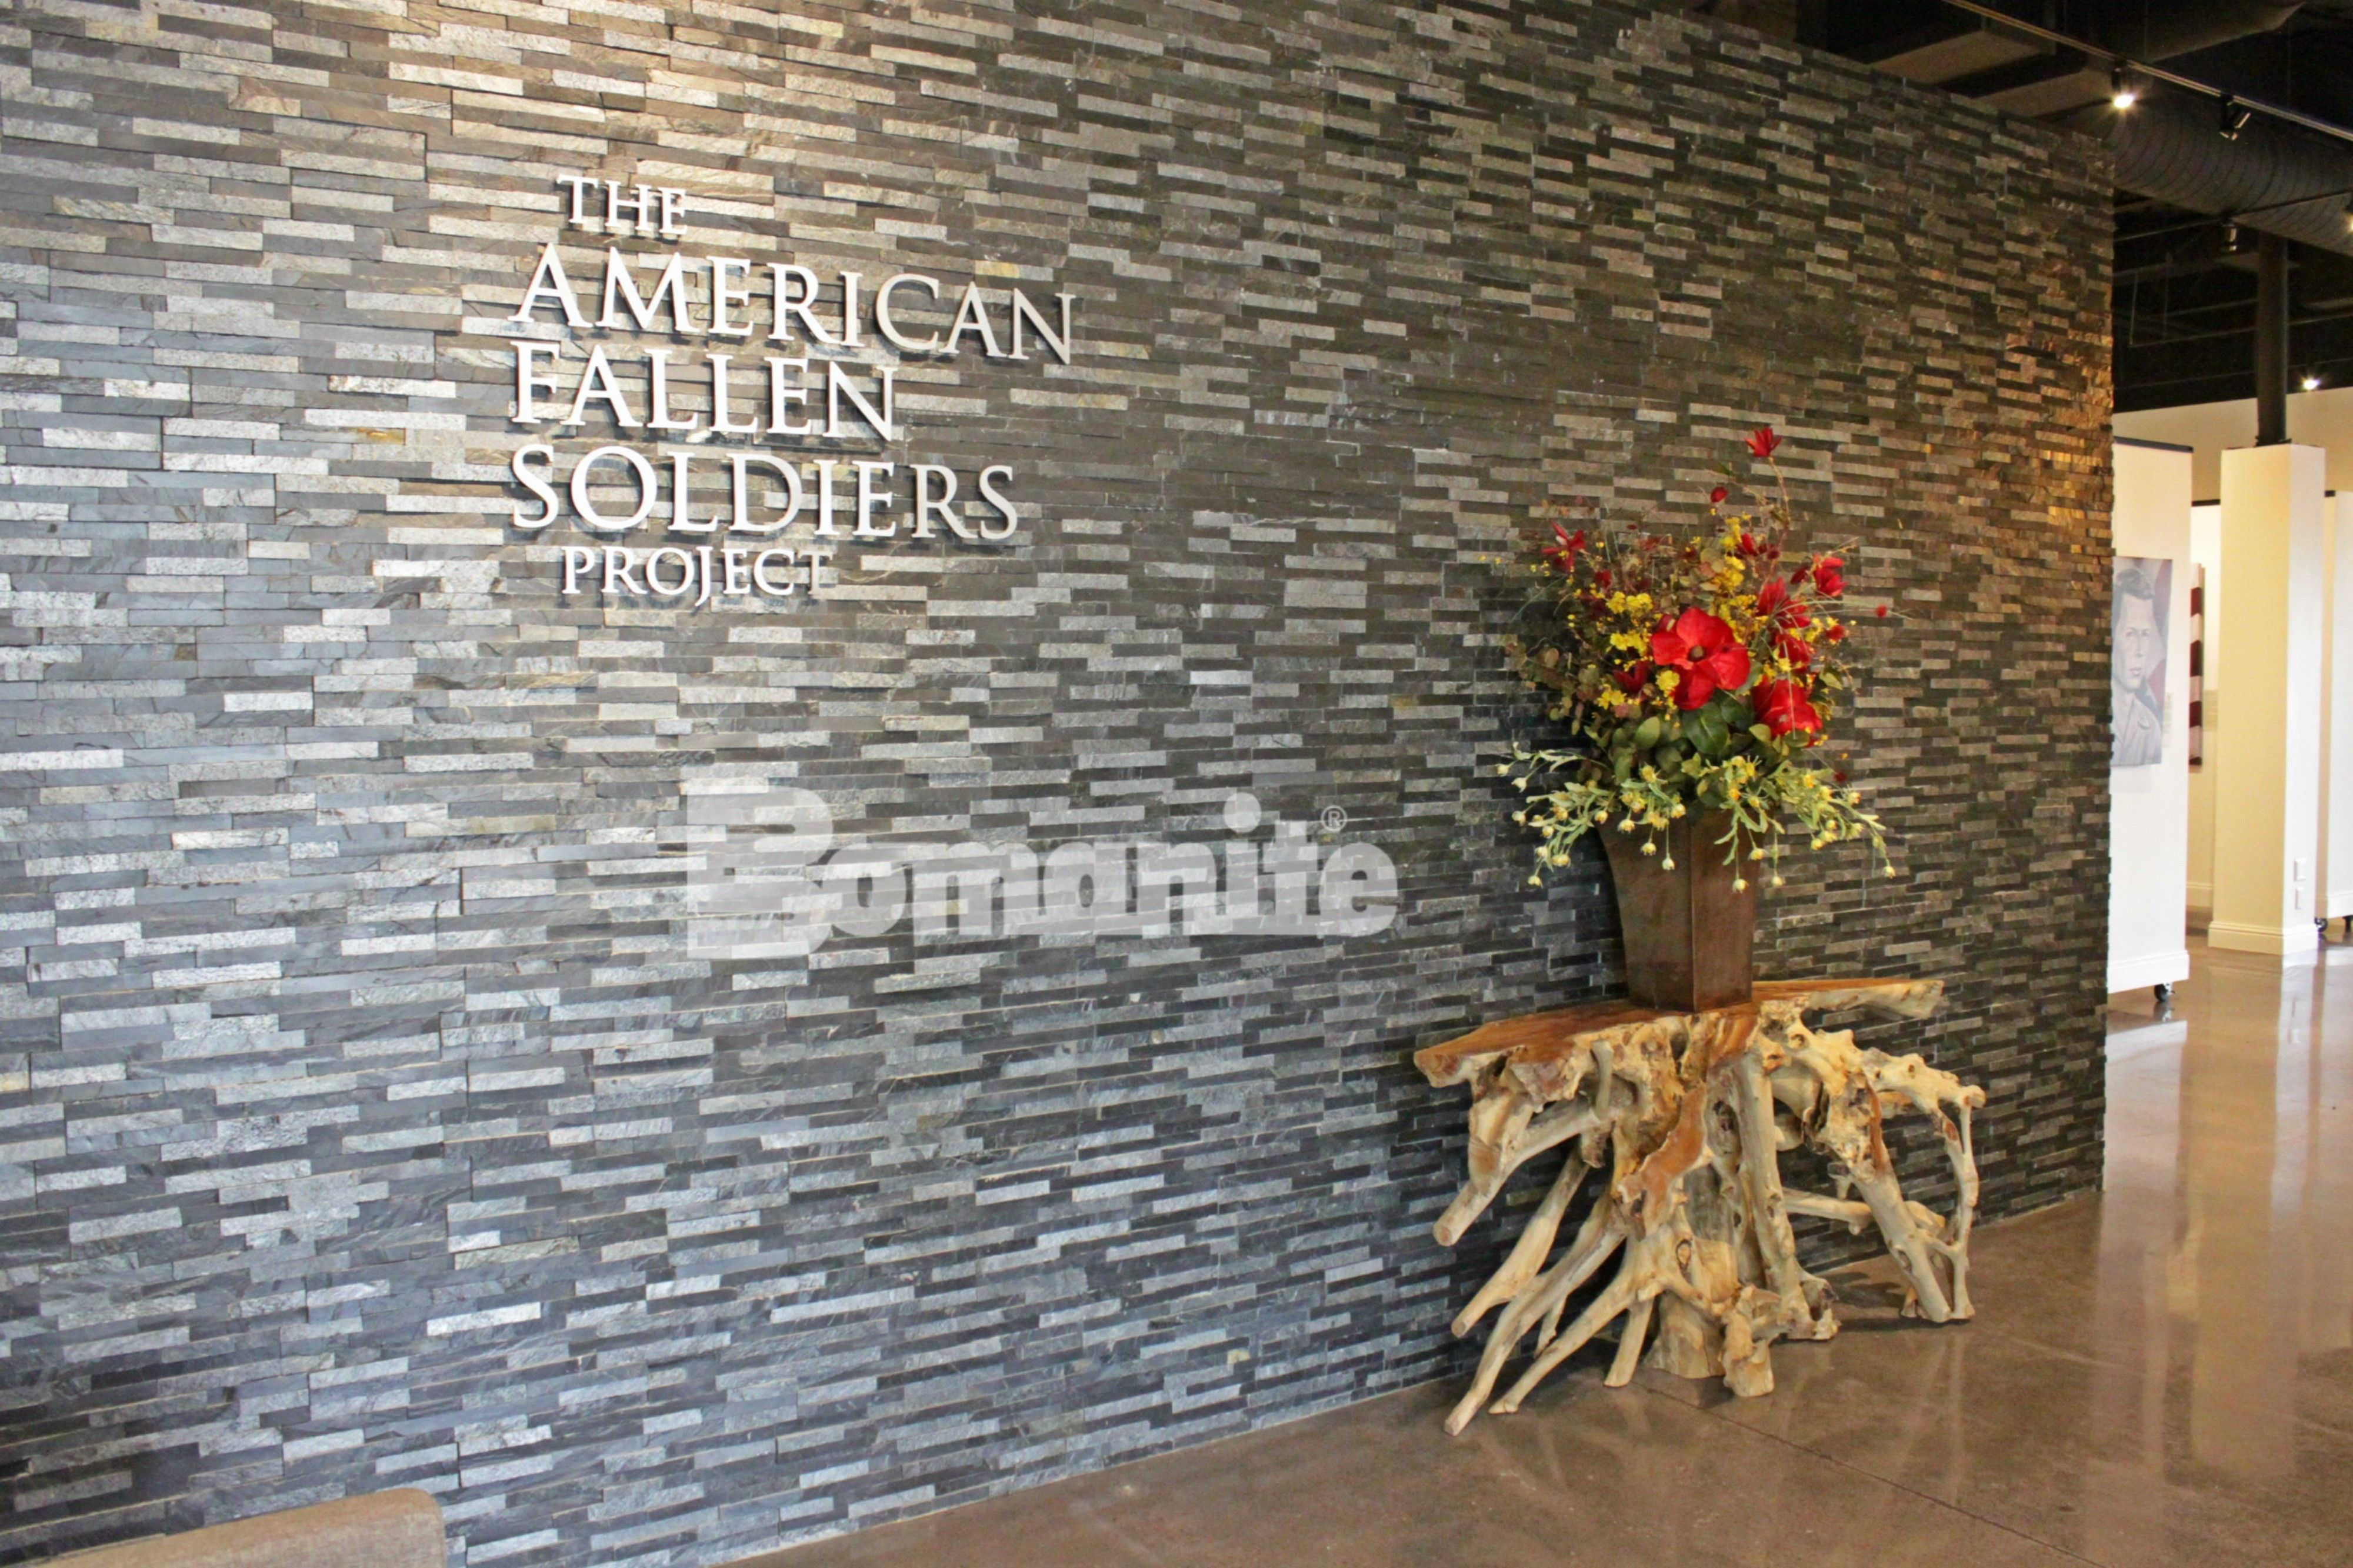 The American Fallen Soldiers Project Gallery, in Addison TX, featuring Bomanite Custom Polishing System using Bomanite Patene Teres decorative concrete flooring.